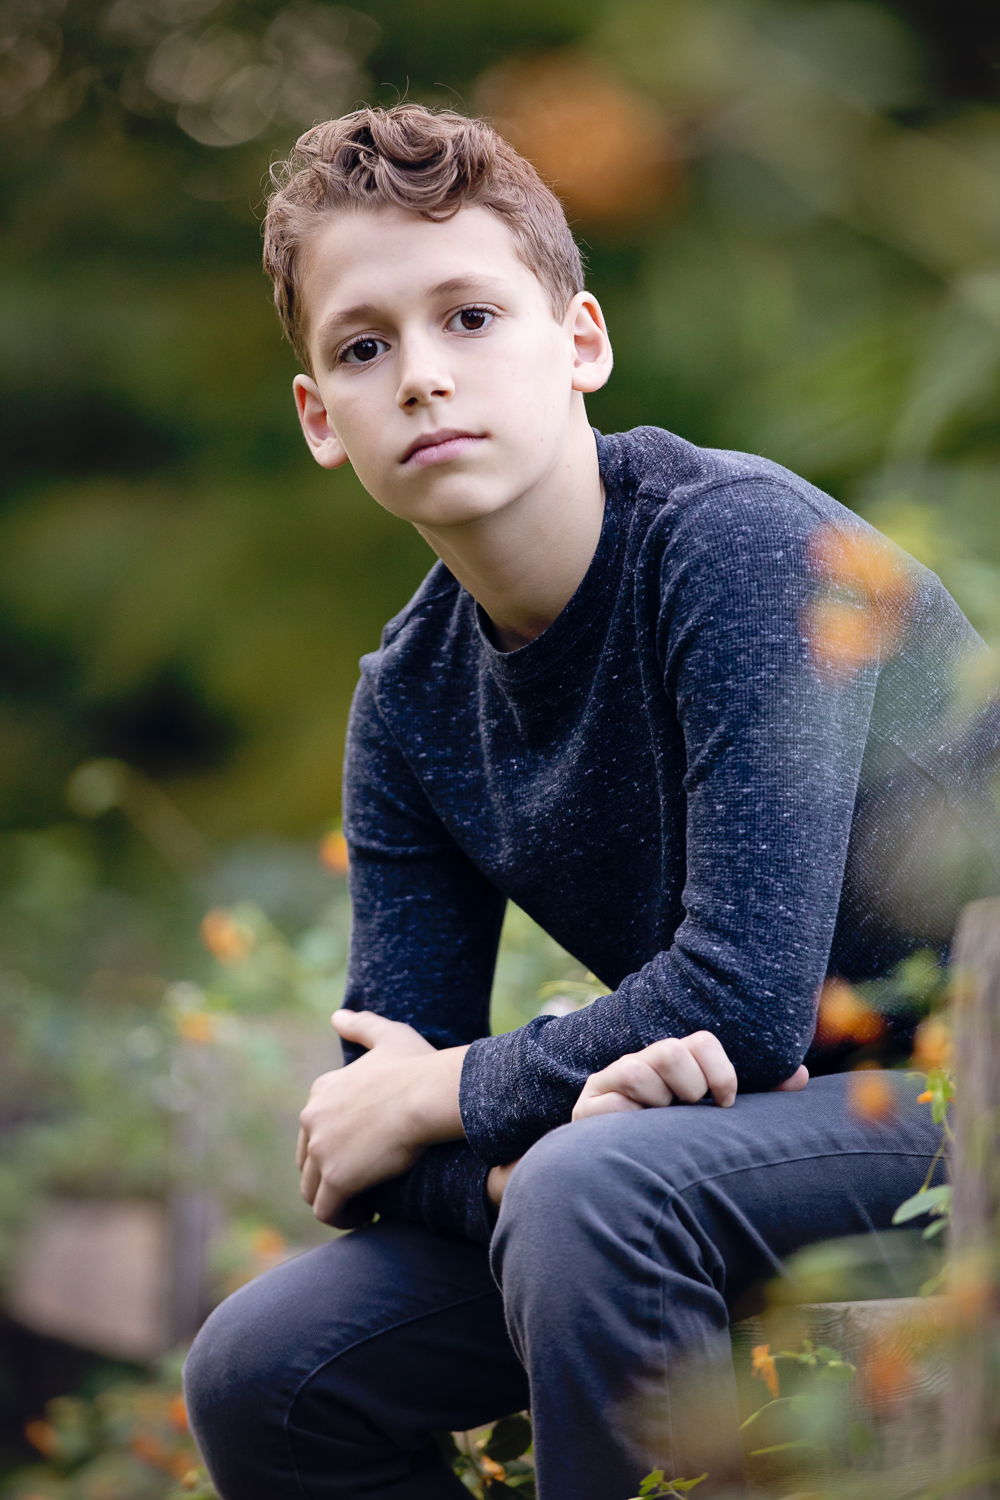 Preteen boy looking cool sitting on a fence